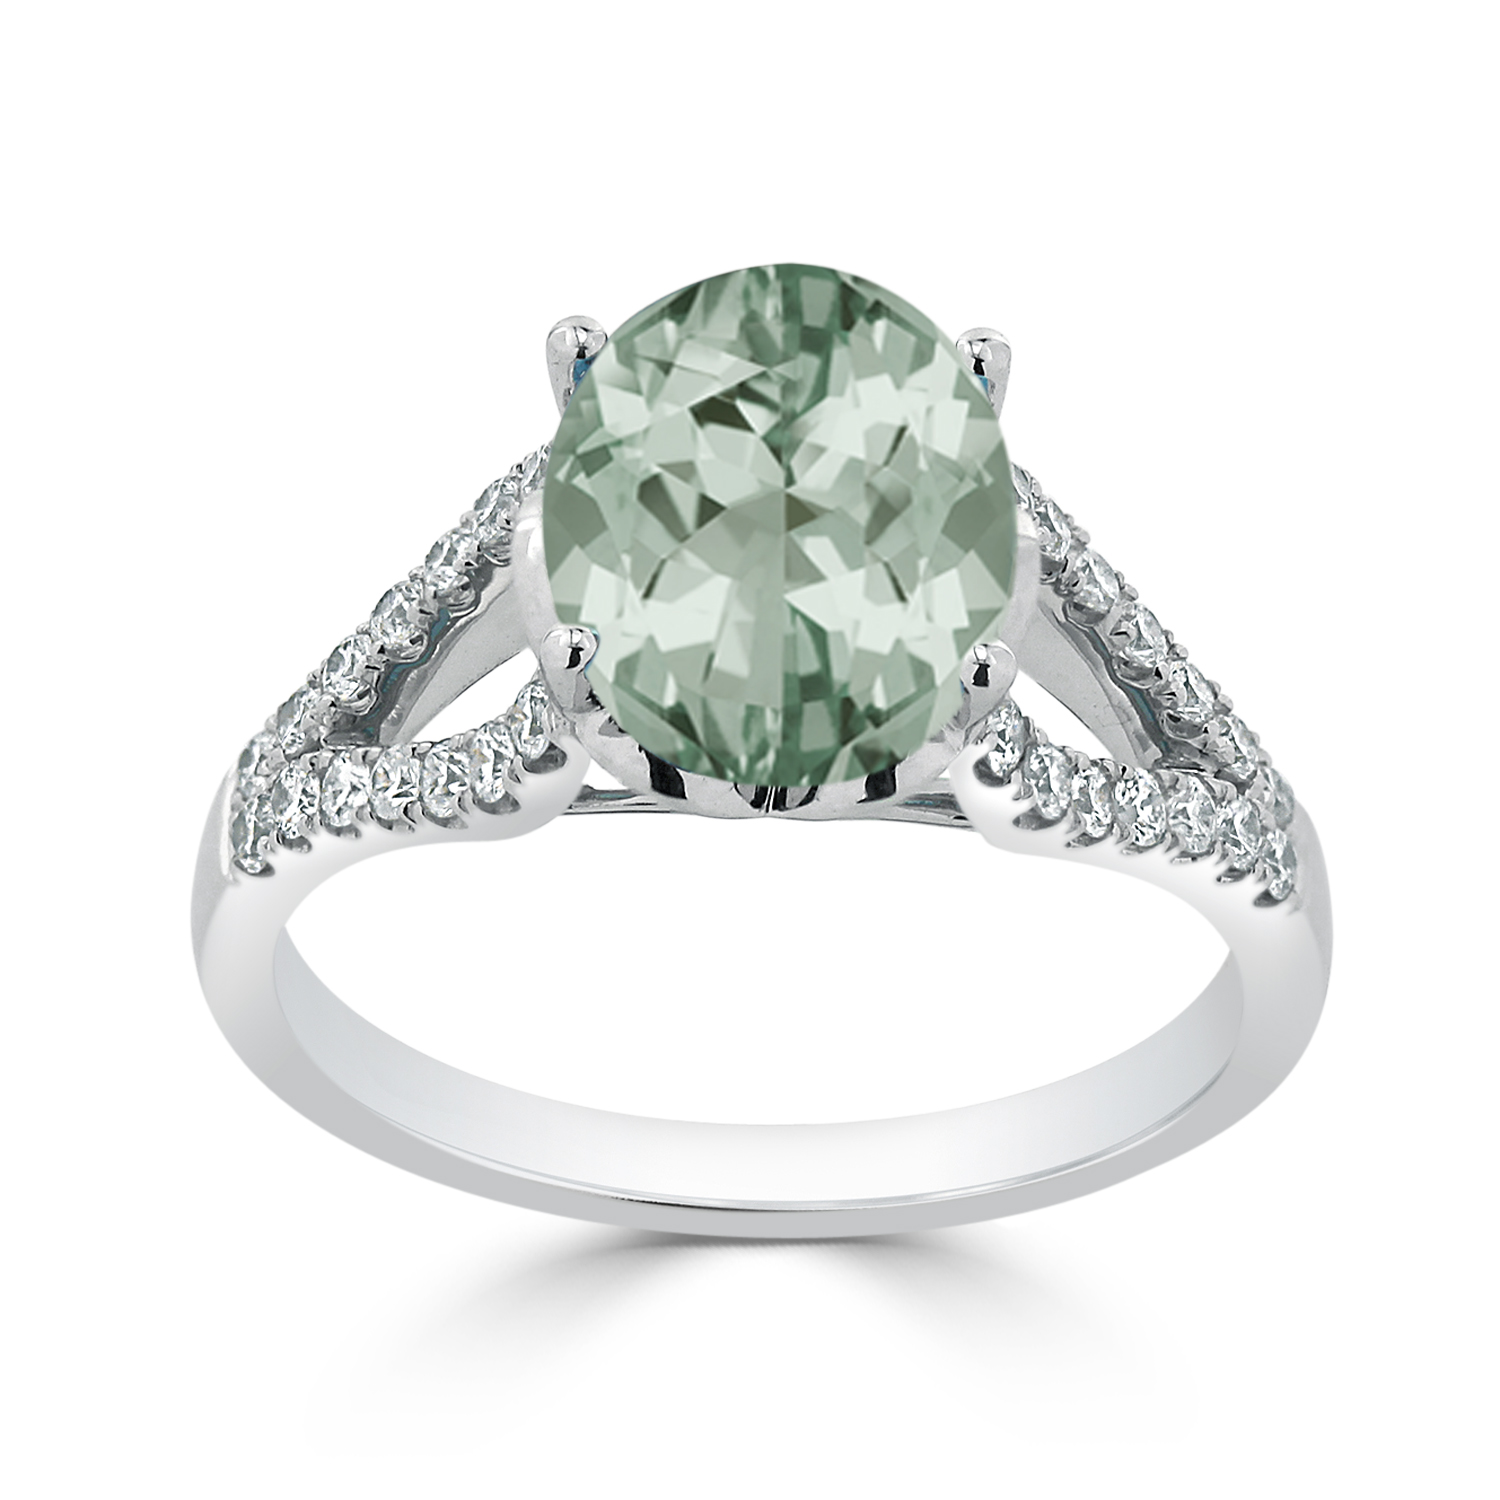 Halo Green Amethyst Diamond Ring in 14K White Gold with 2.30 carat Oval Green Amethyst